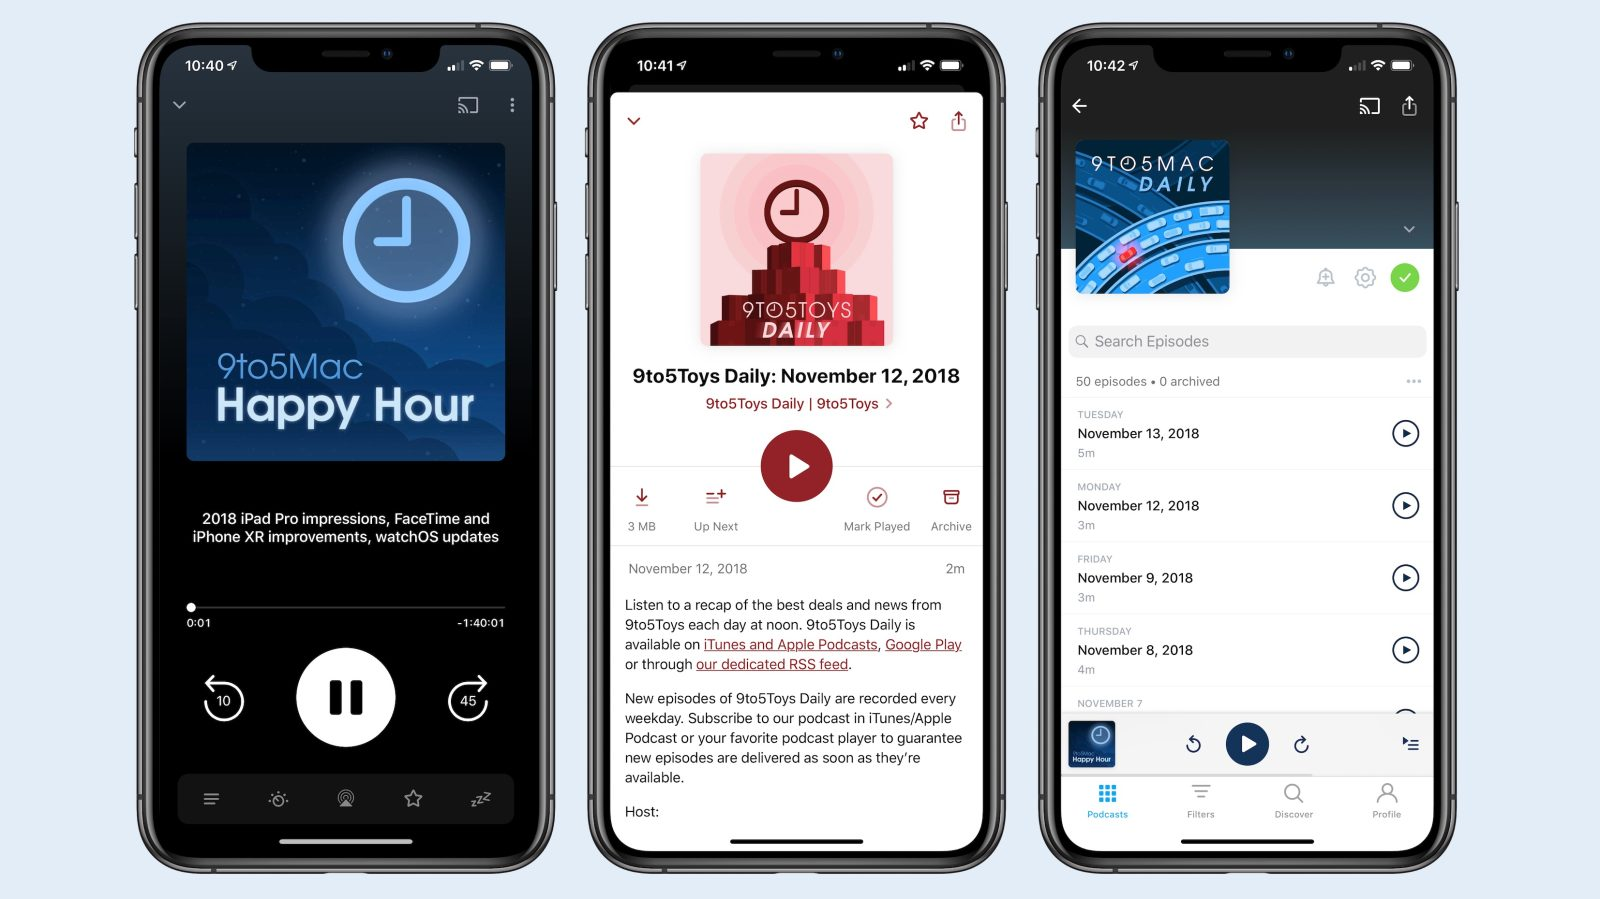 Pocket Casts for iOS adds Siri Shortcuts, syncing, improved